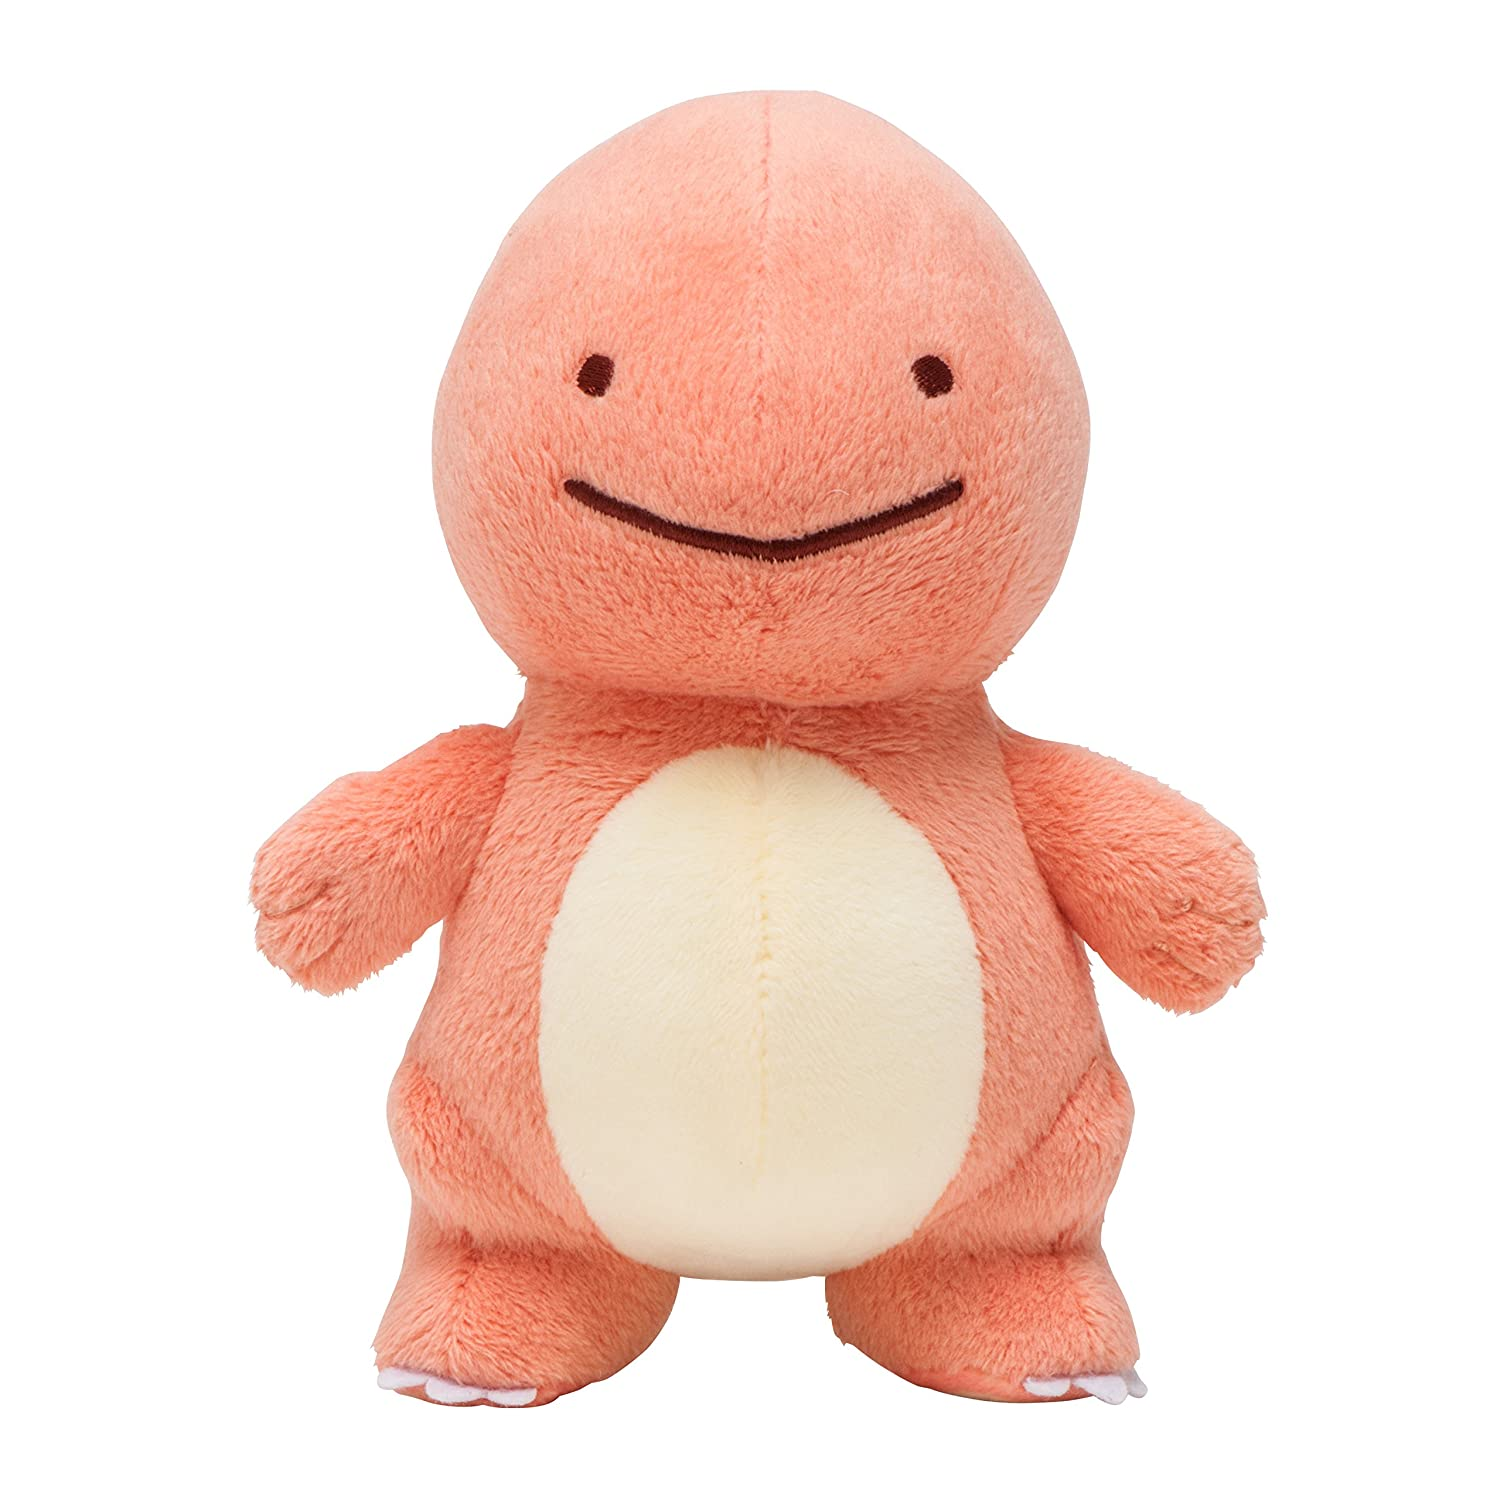 bajo precio Pokemon Center Original stuffed Transform    Metamon Charmander by Pokemon Center  venderse como panqueques